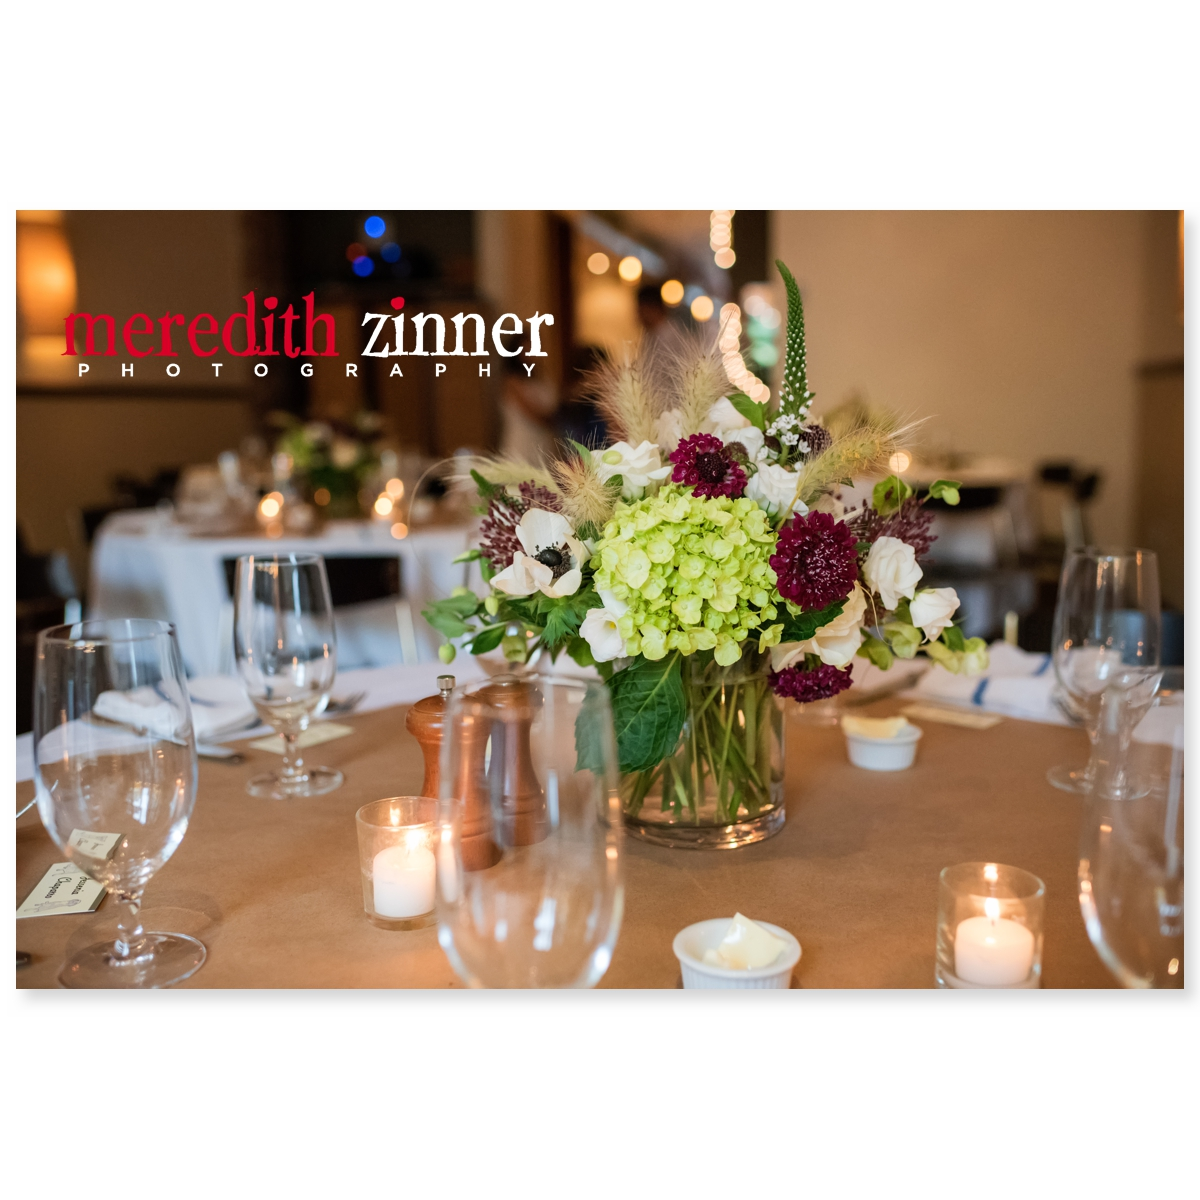 Meredith_Zinner_Photography_StilesCelebration_0012